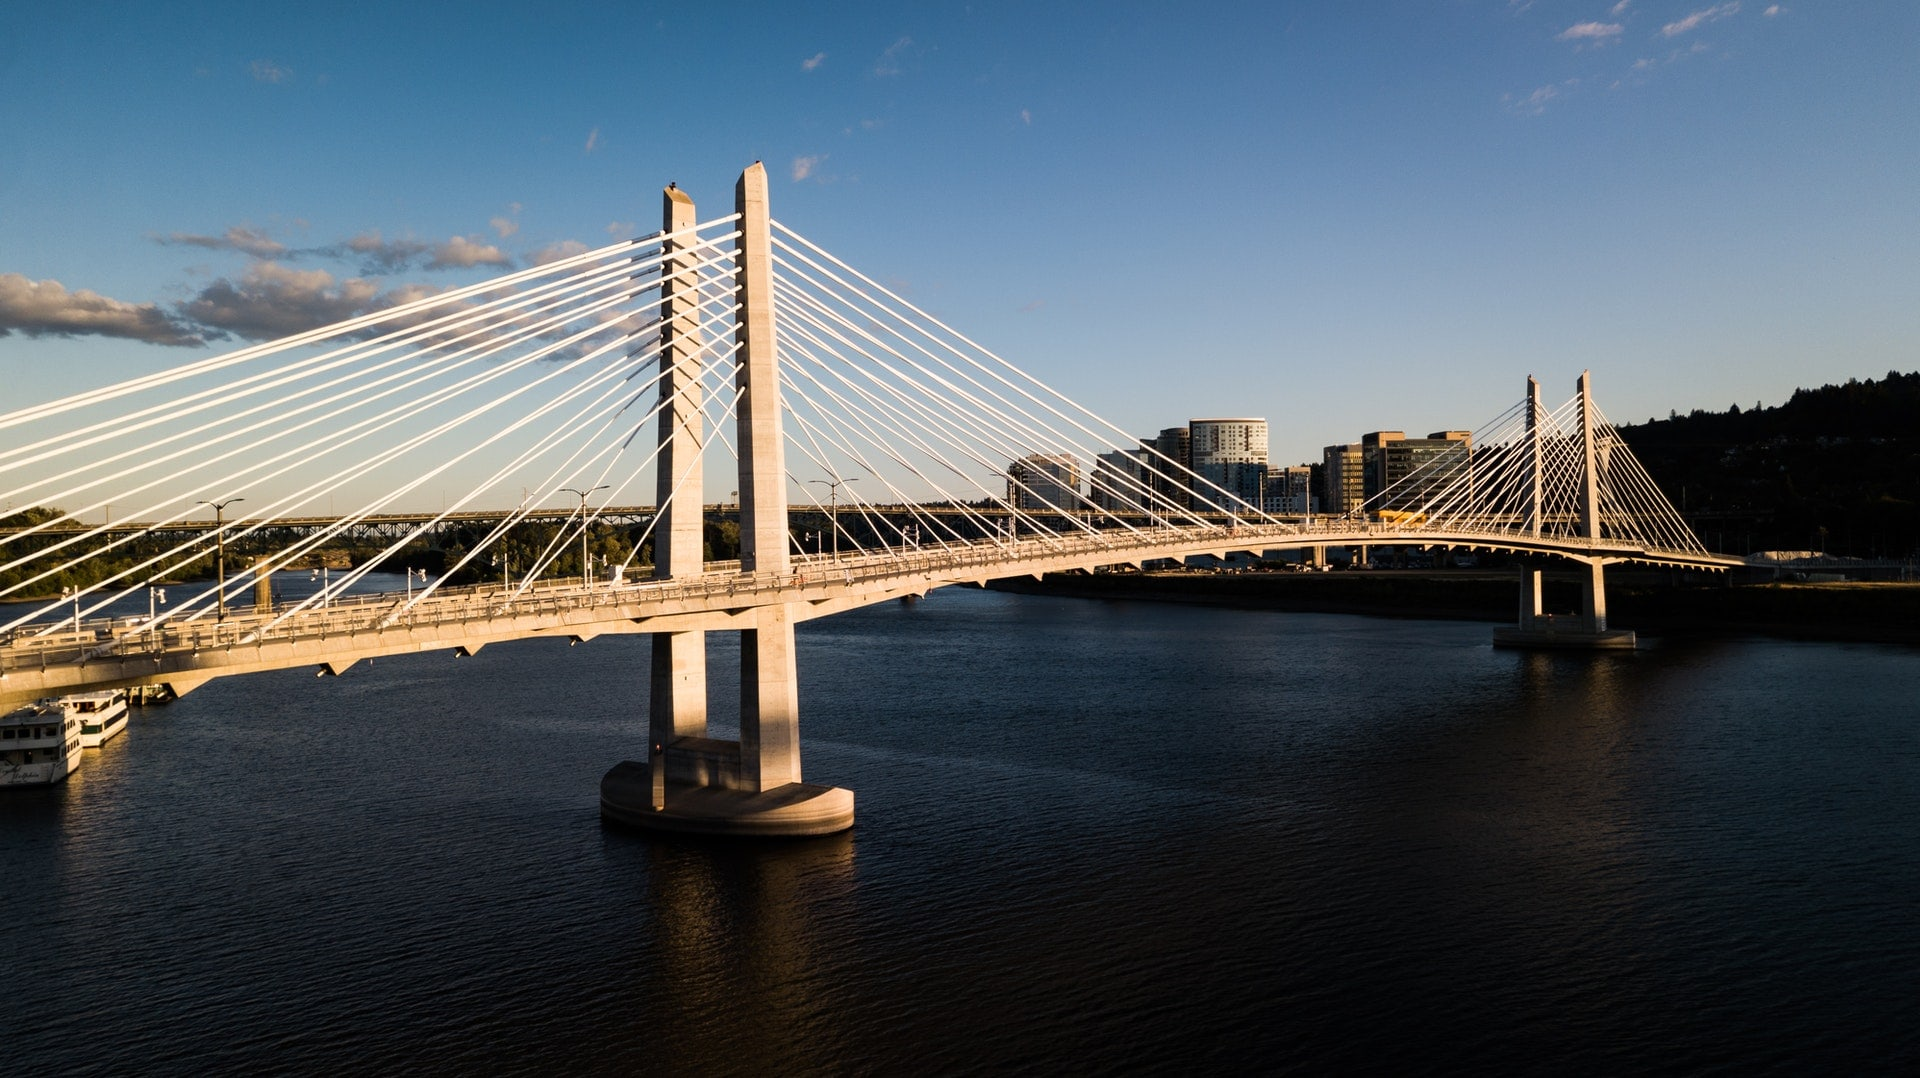 Is Portland worth visiting?